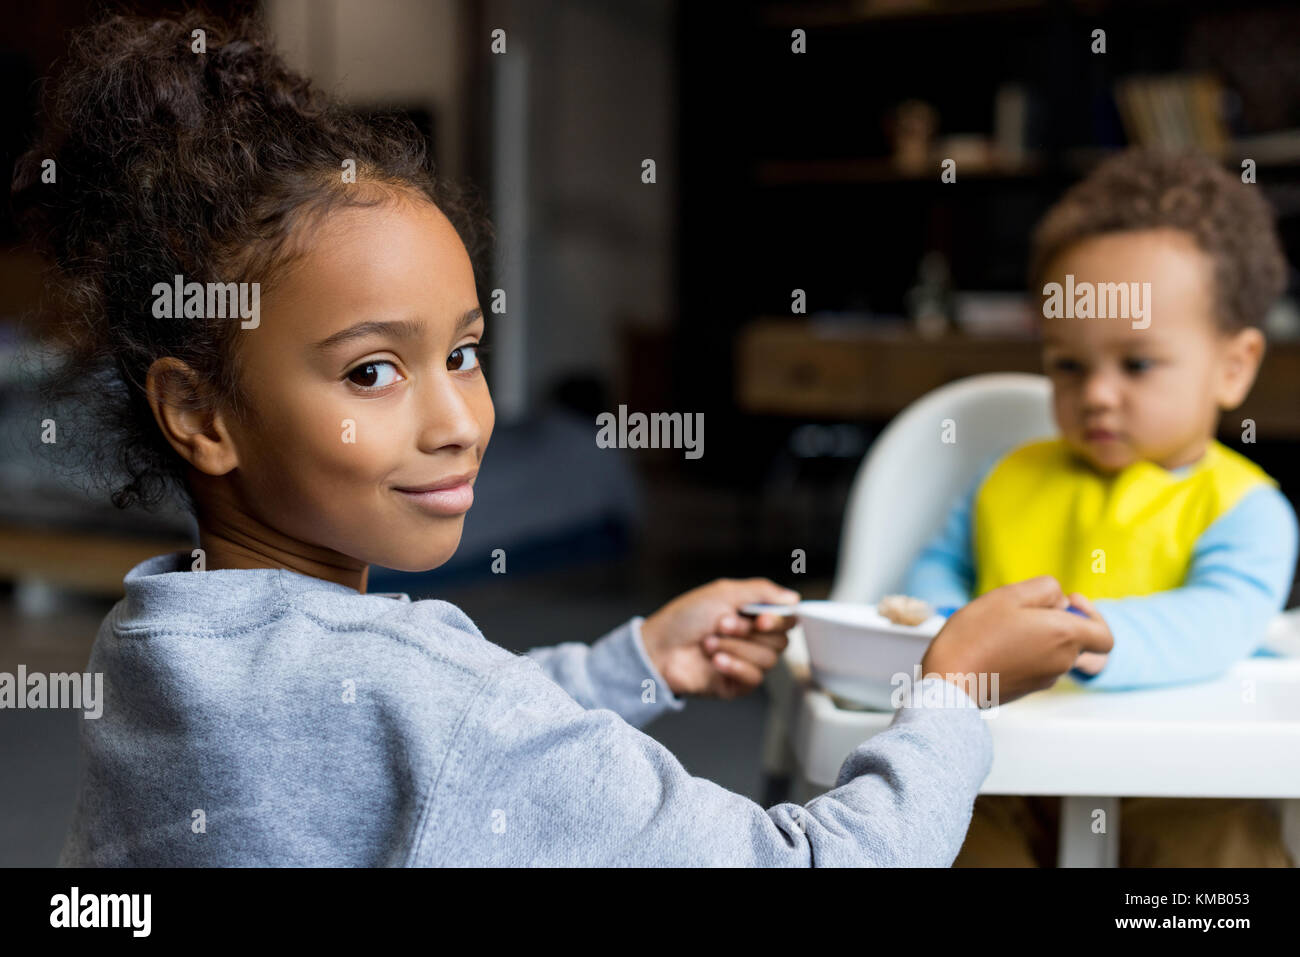 sister feeding her brother - Stock Image